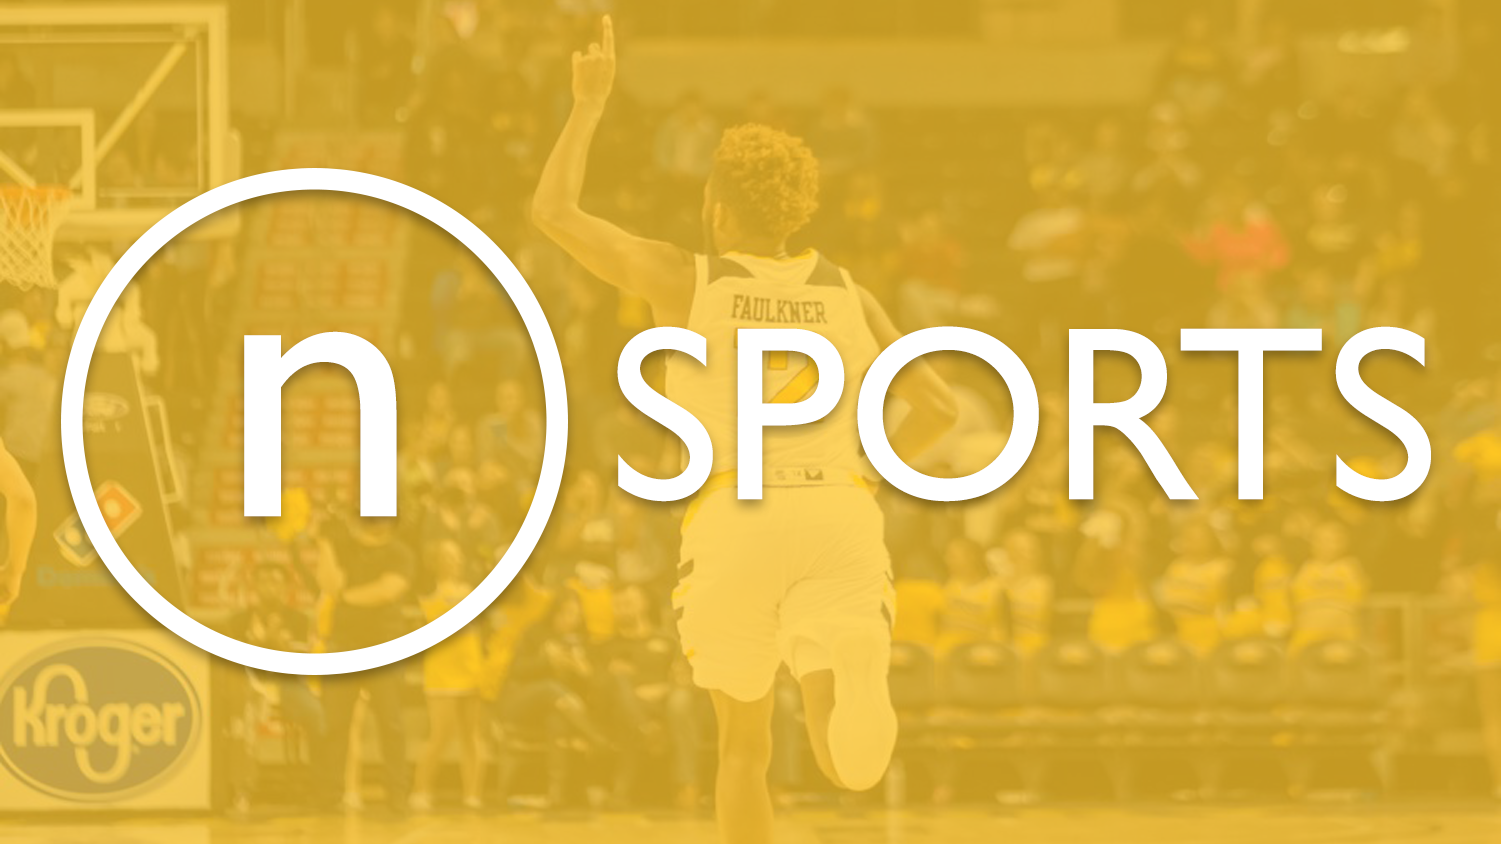 IUPUI beats NKU MBB in first game of the weekend behind Burk's 27 points